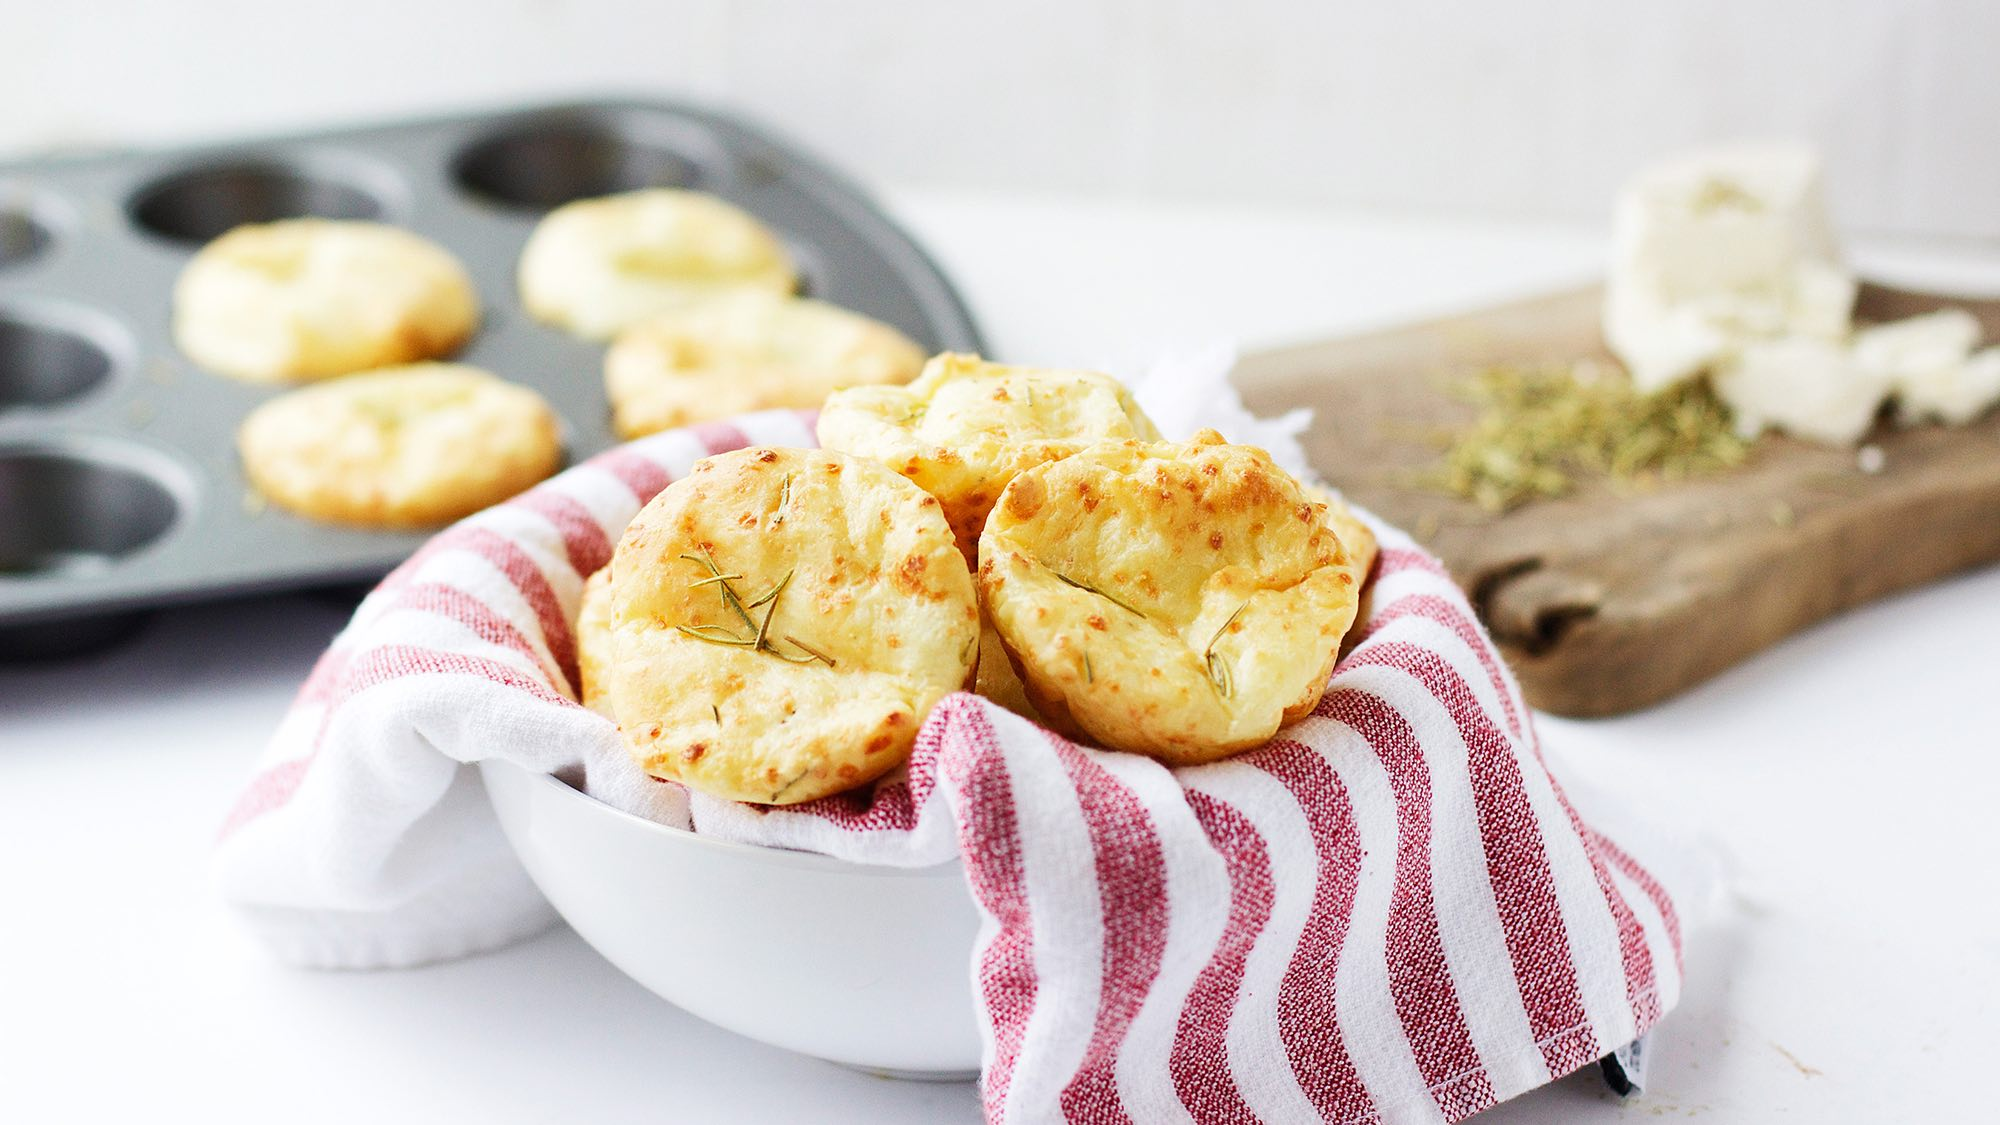 brazilian-cheese-rolls-with-rosemary-and-black-pepper-cooking-for-keeps.jpg